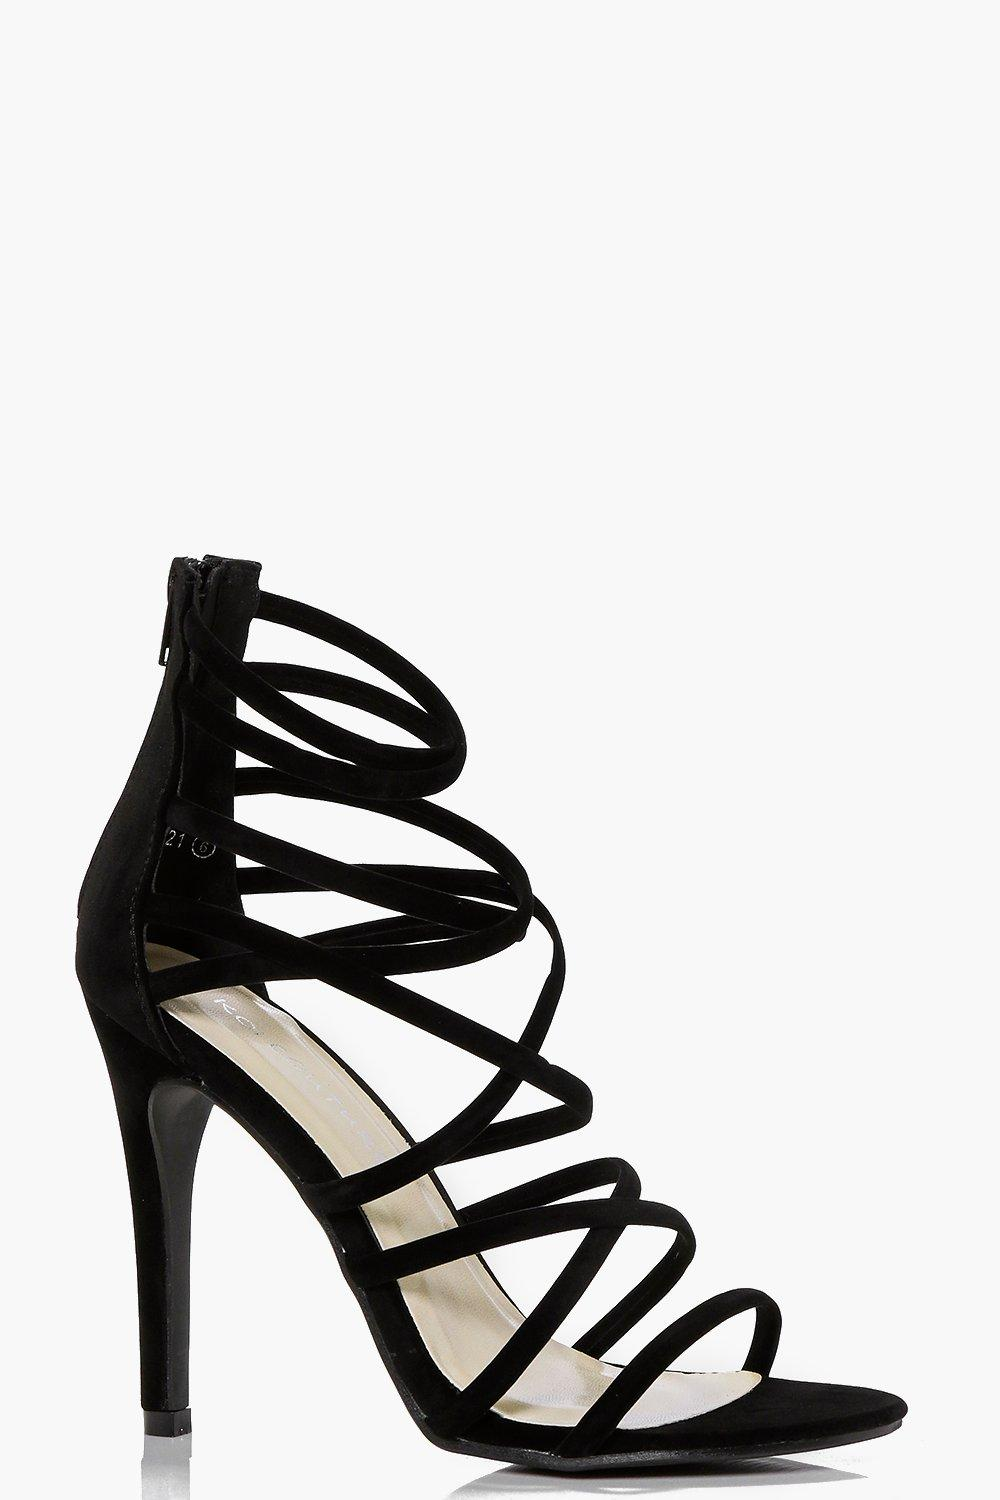 Multi Strap Tie Stiletto black